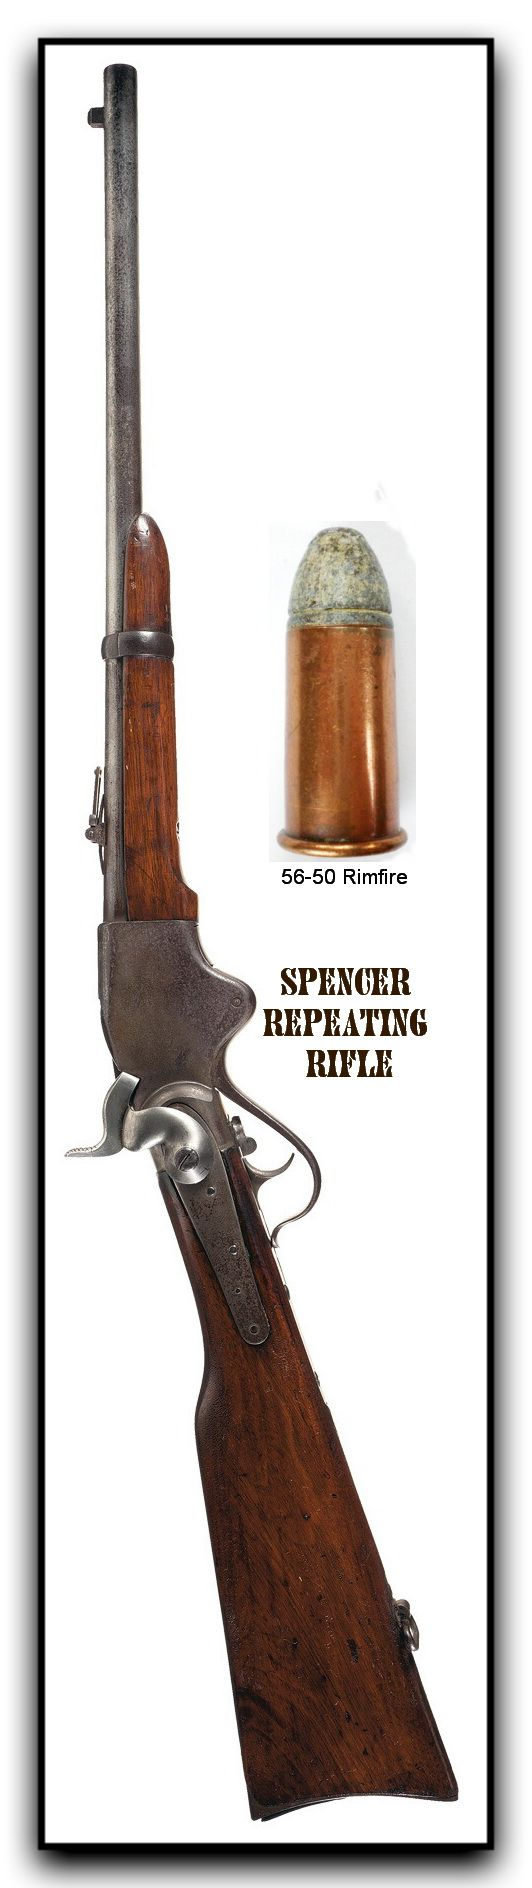 www.pinterest.com/1895gunner/  Spencer repeating rifles were designed in 1860 and saw some civil war action. The smaller carbine as we see in this illustration, was a popular gun in the early west. The original design was completed by Christopher Spencer in 1860, and was for a magazine-fed, lever-operated rifle chambered for the .56-56 Spencer rimfire cartridge. The pictured carbine was shorter and used a 56-50 caliber copper cased rimfire cartridge that was usually headstamped.